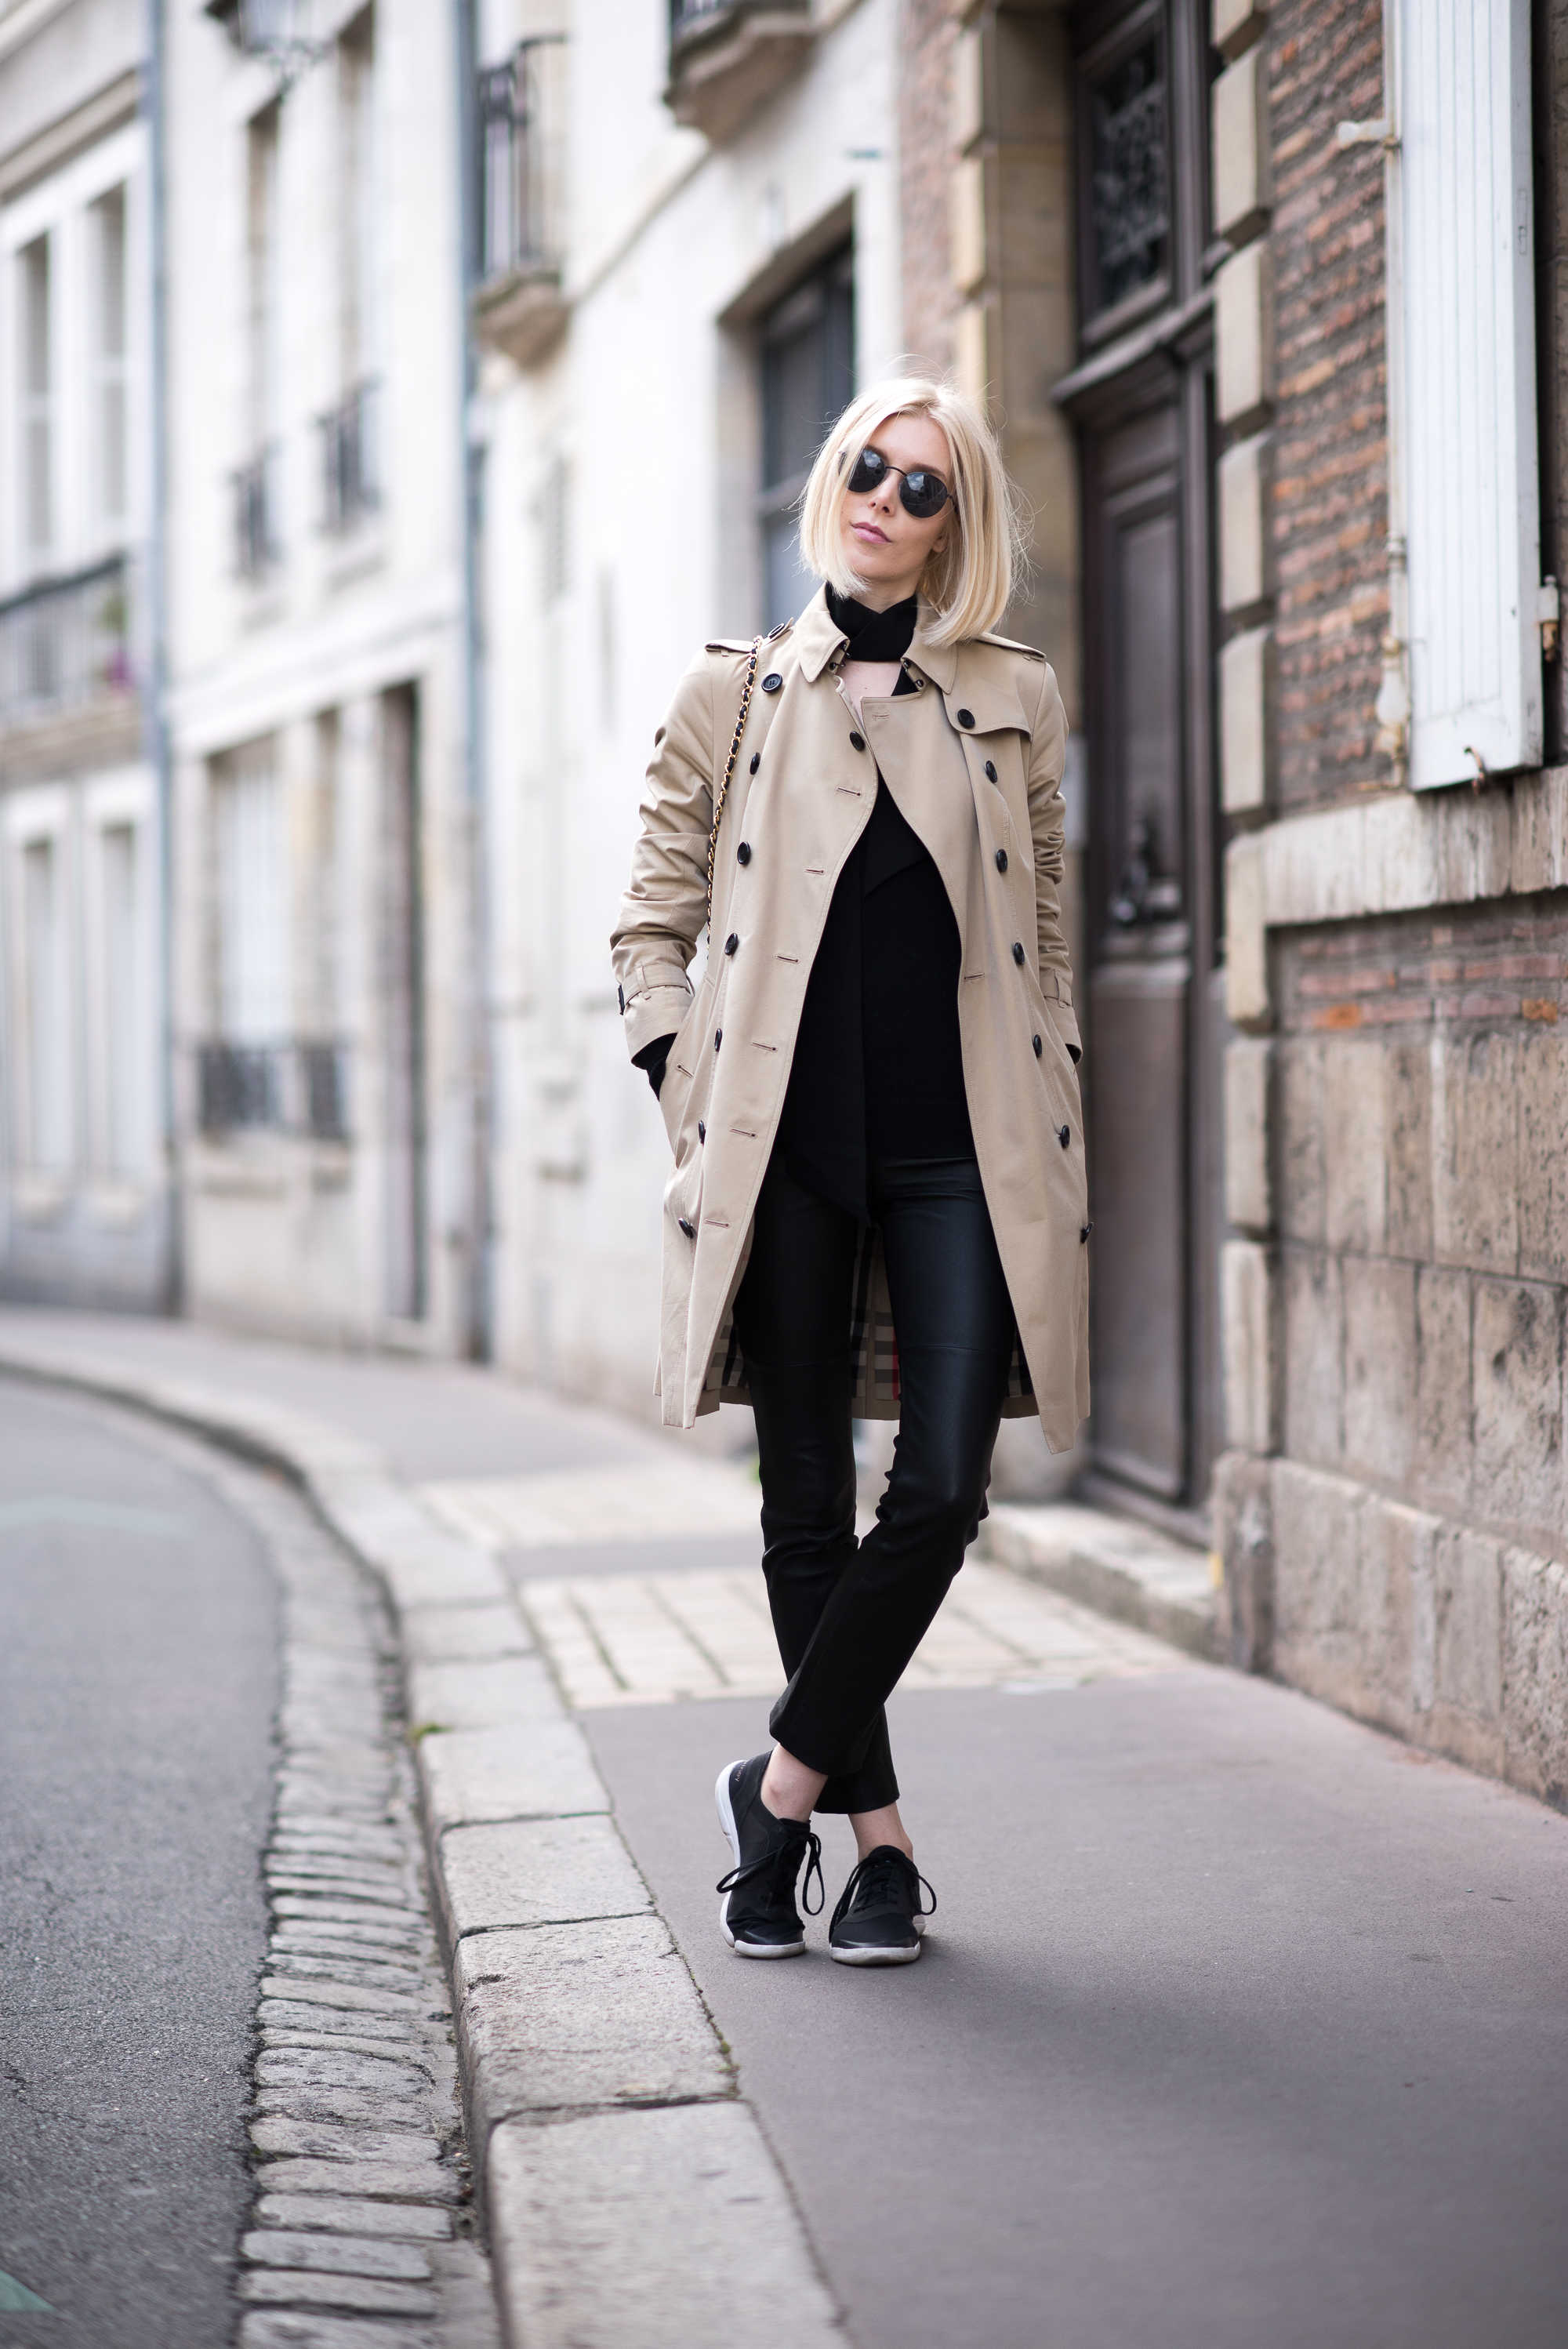 burberry-trench-outfit-2